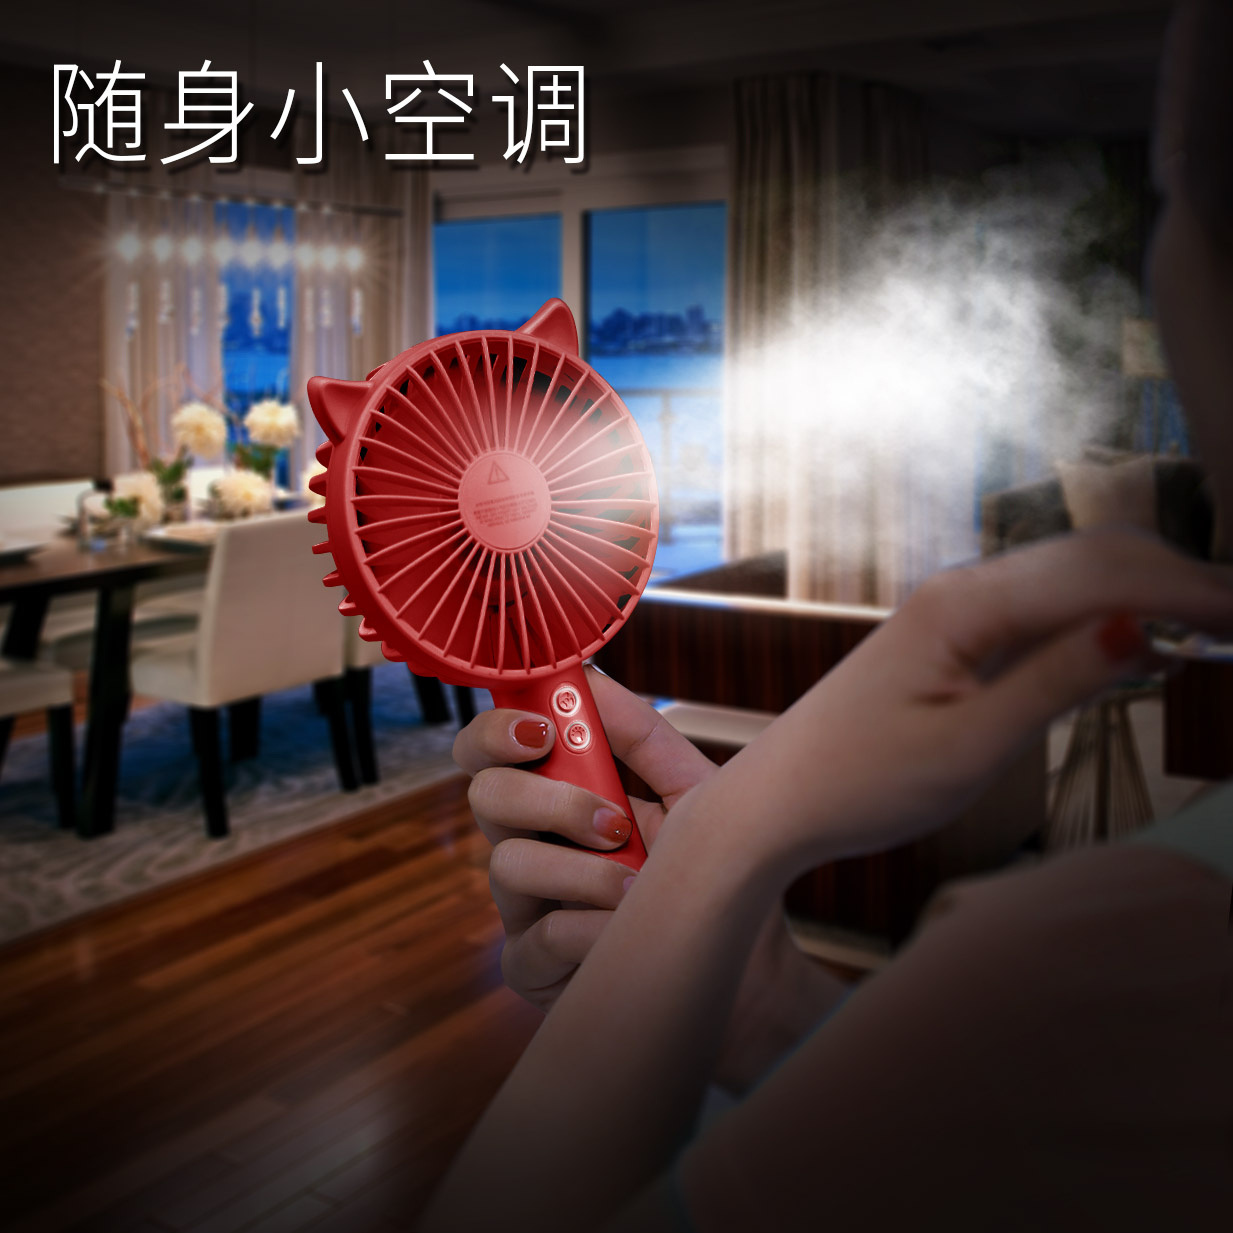 USB Small Fan Big Wind Mini Handheld Small Portable net red Small Electric Fan Rechargeable Mini Student Dormitory Bed Silent Office Table Hand Electric Fan Electric